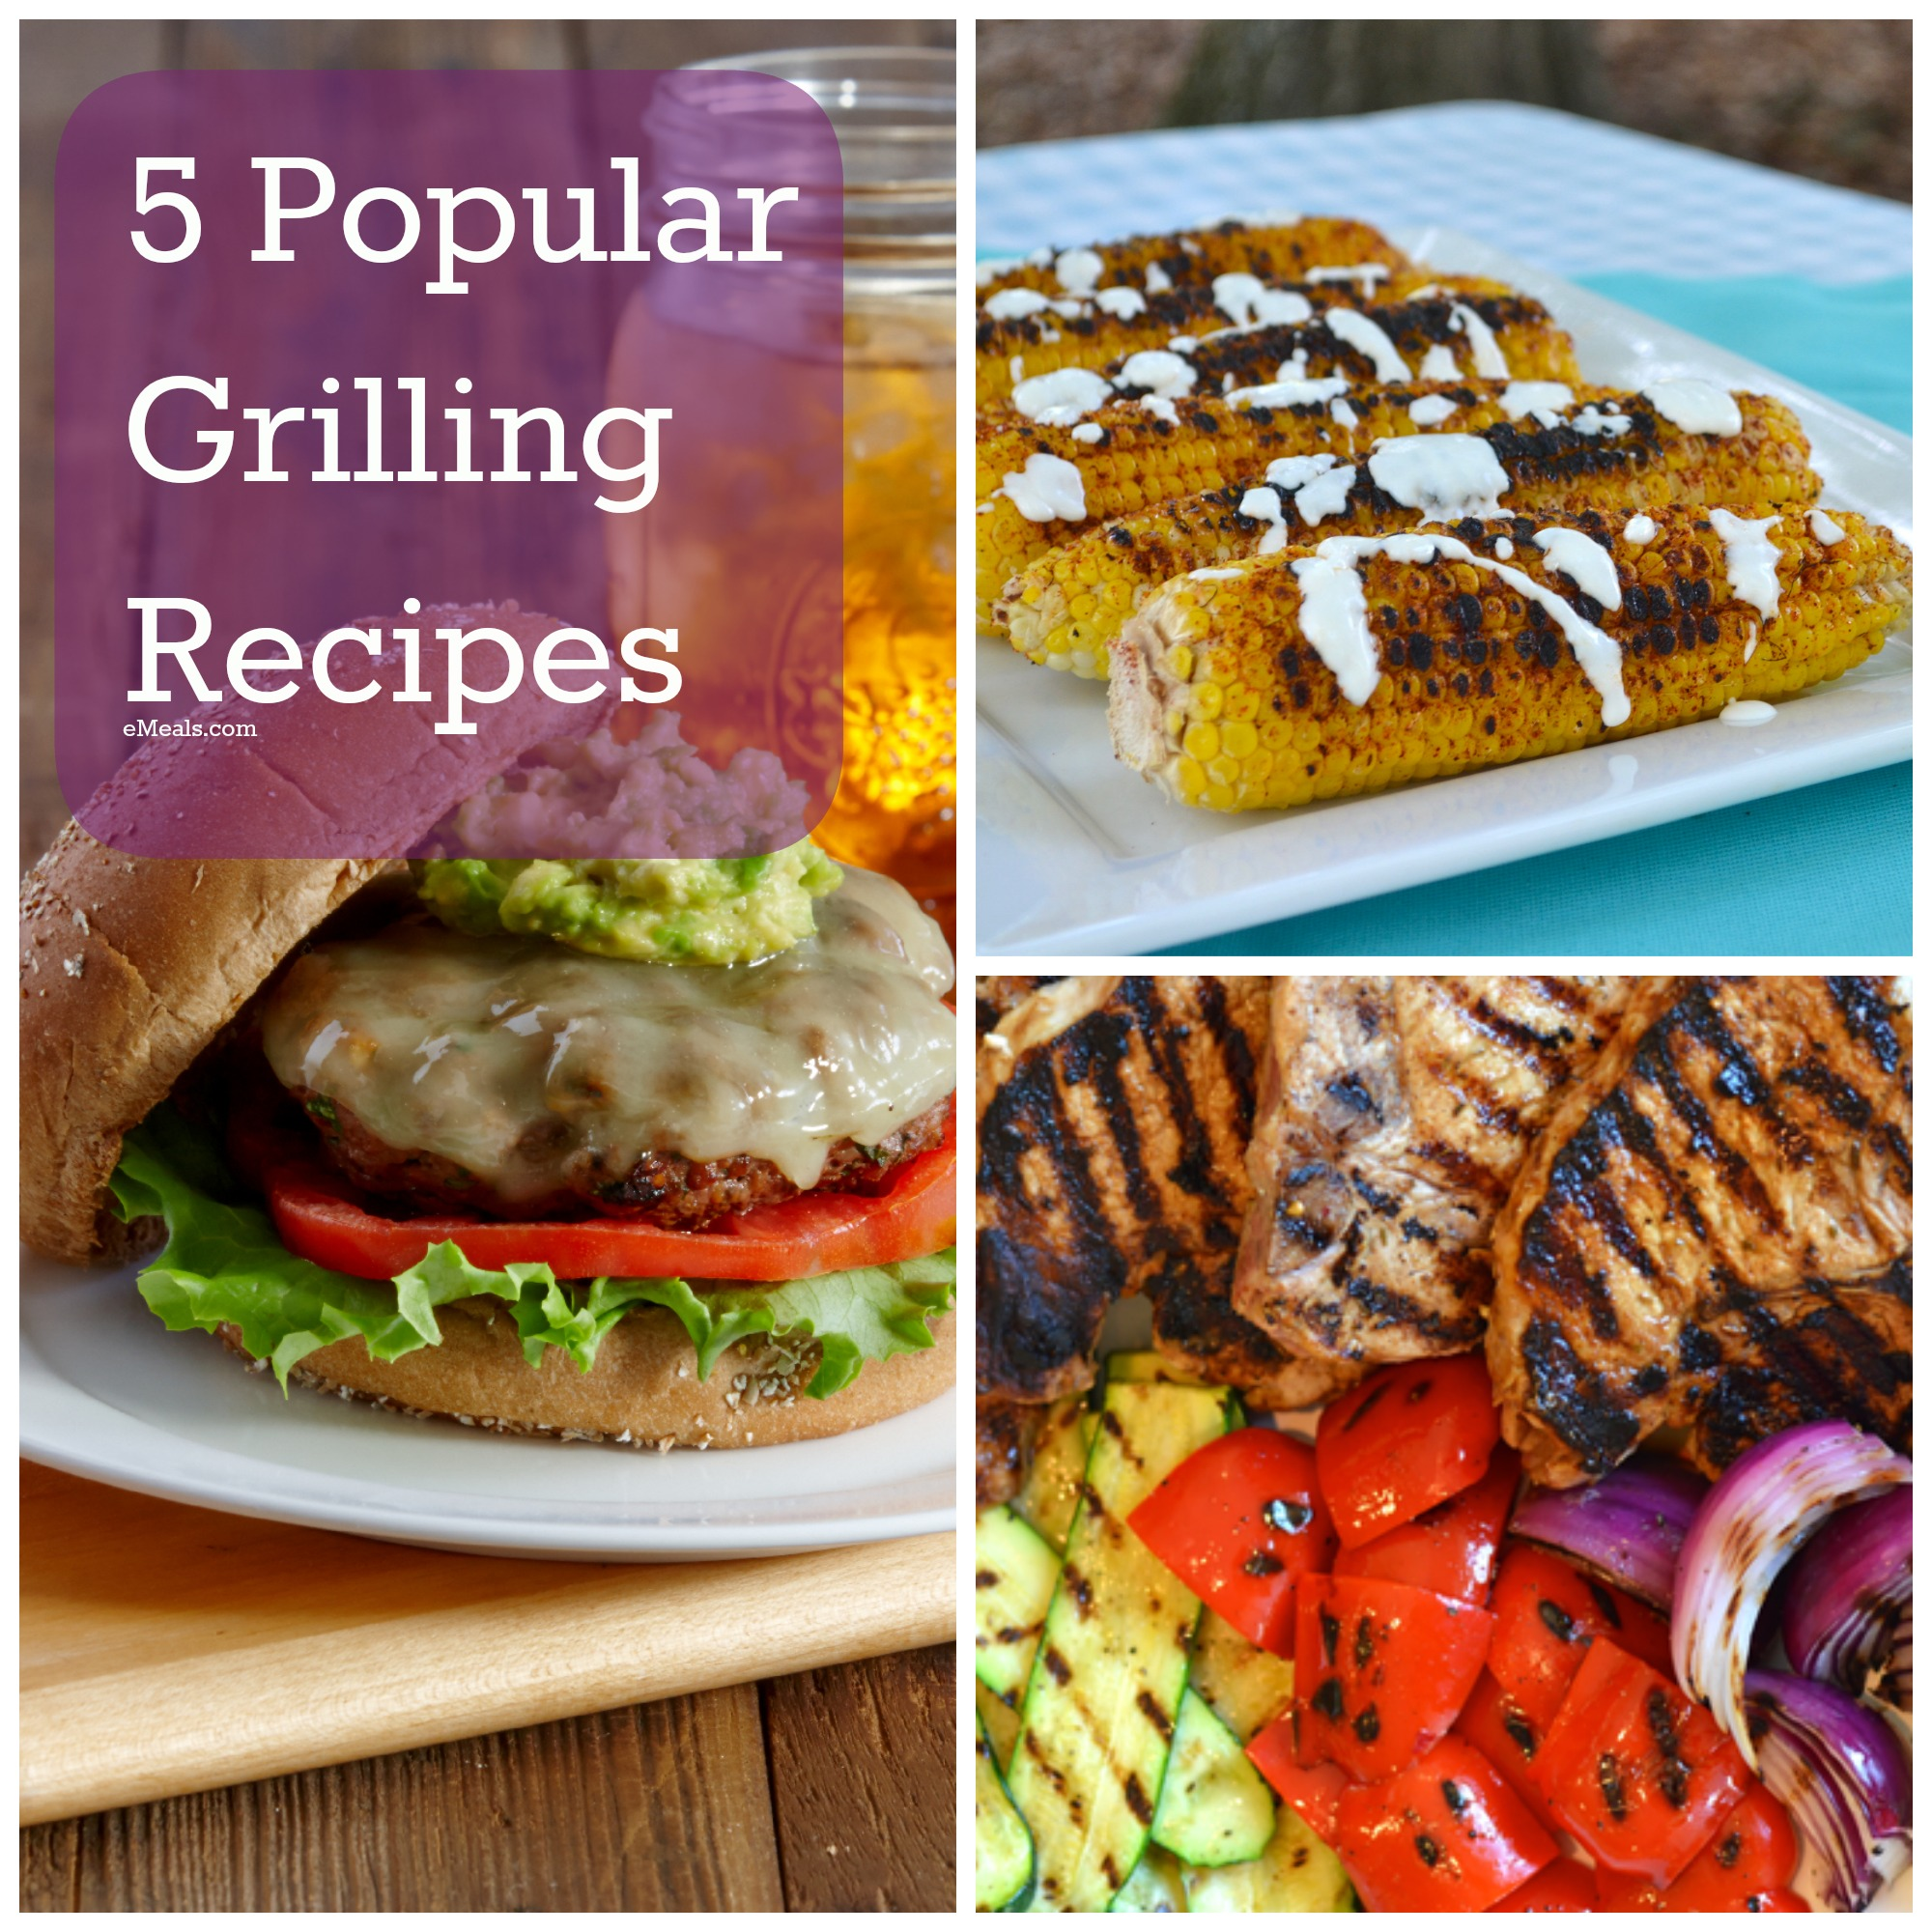 Varied Grilling Recipes for Summer